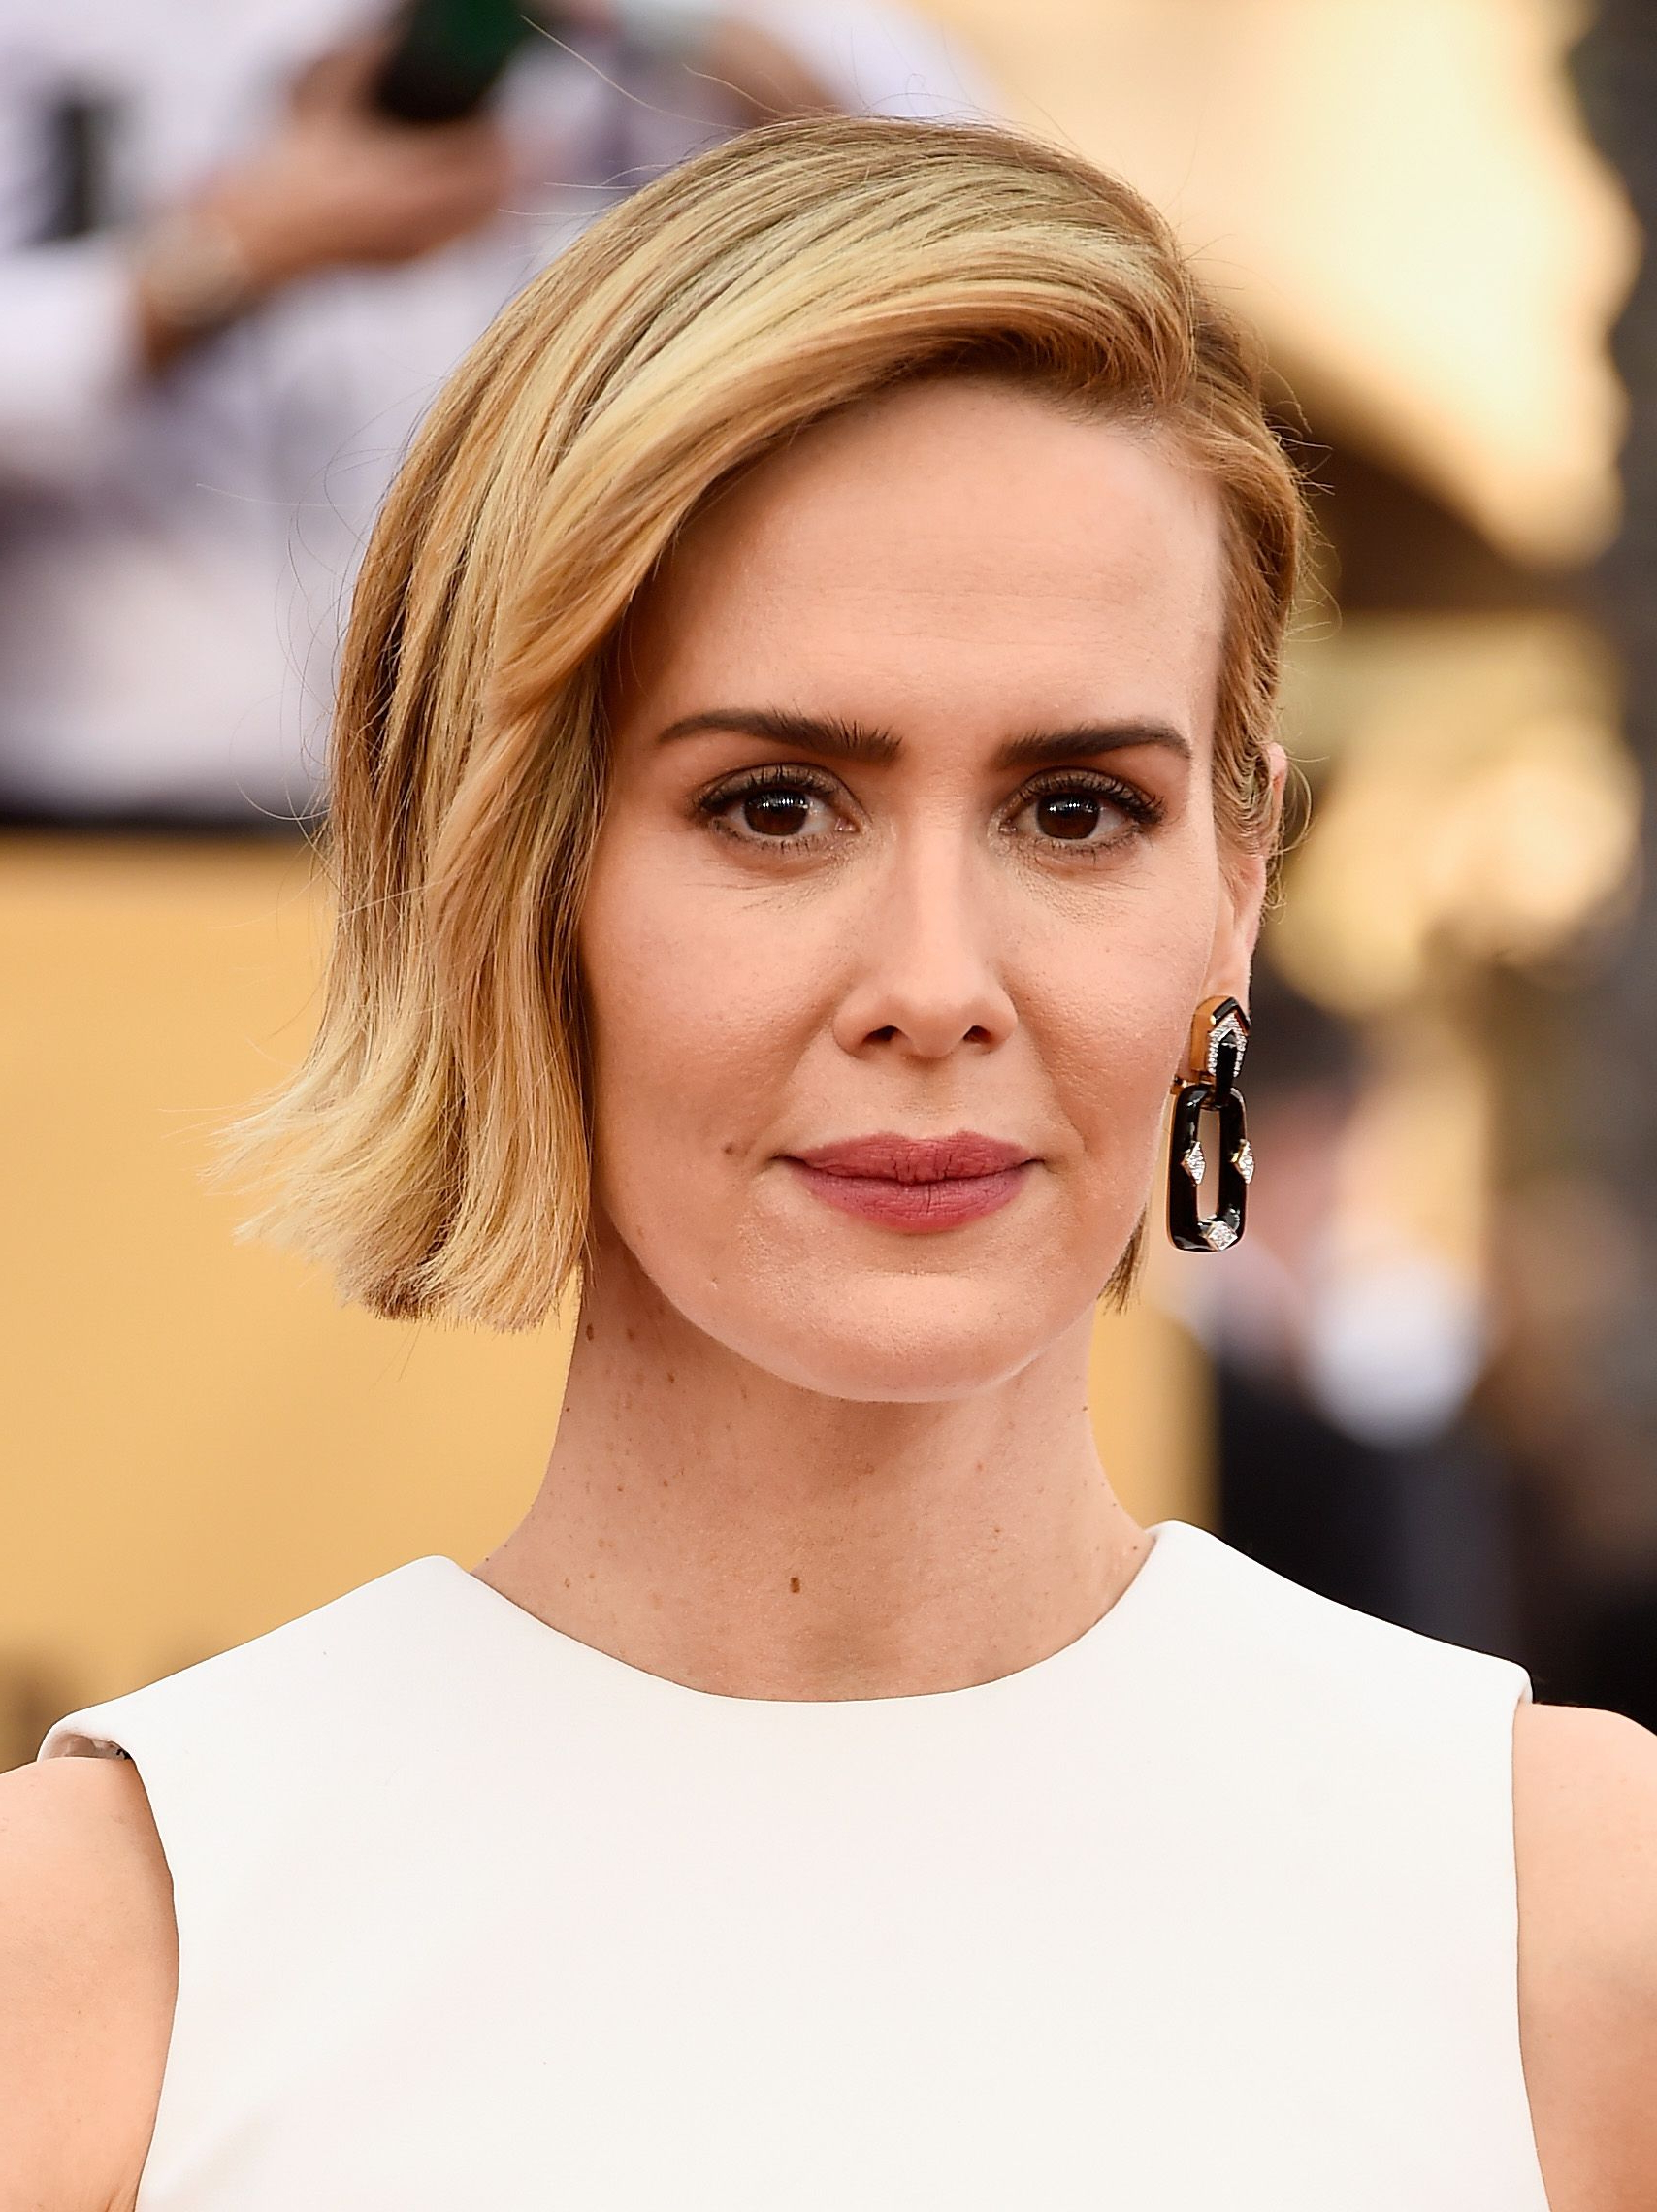 65 Best Short Hairstyles, Haircuts, And Short Hair Ideas For 2018 Pertaining To Cute Celebrity Short Haircuts (View 3 of 25)